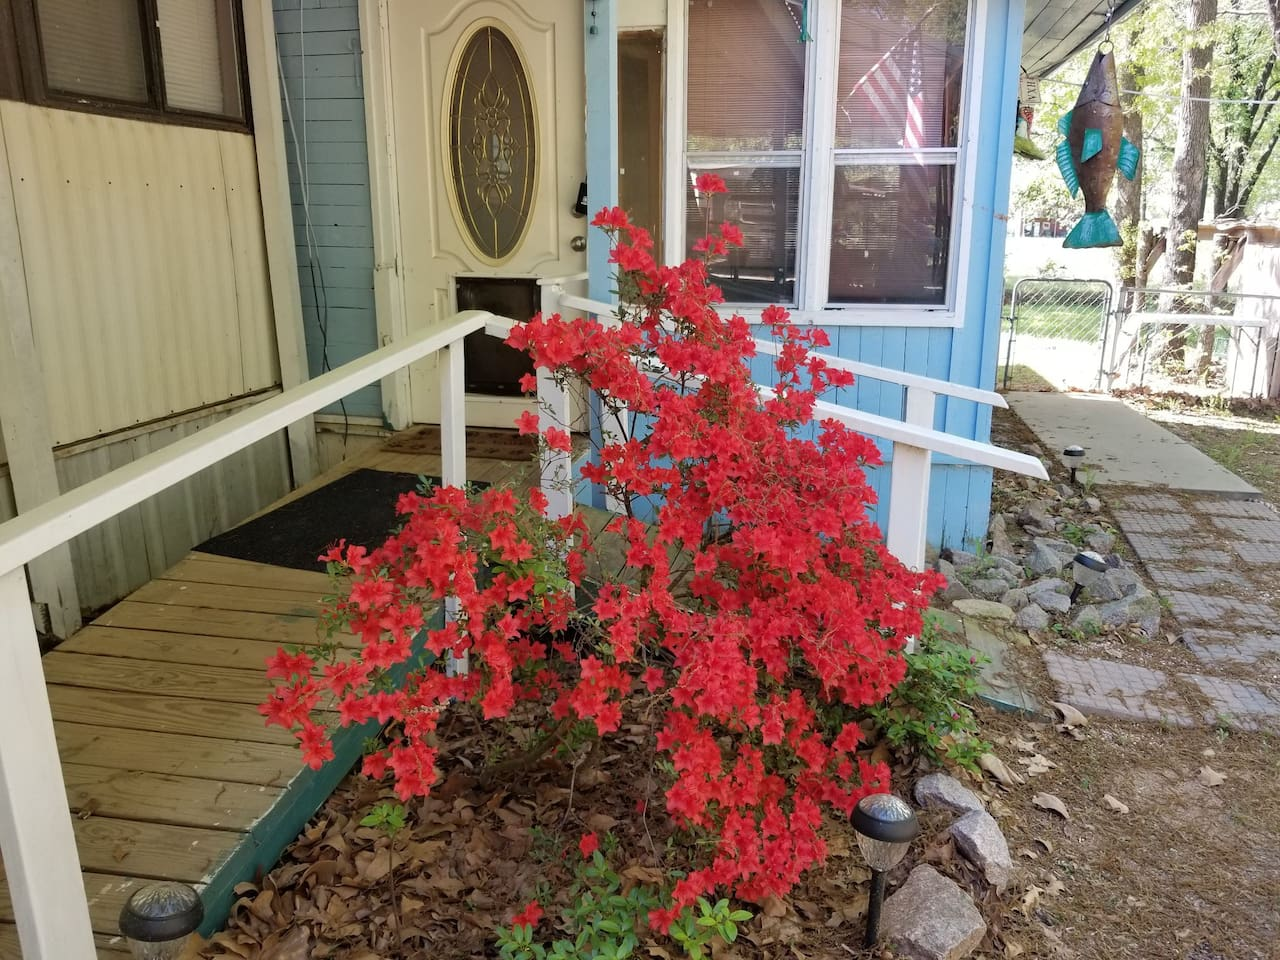 Azaleas are in bloom in the Spring. We just love this blaze red color. Our place is cozy, clean, and all you need.